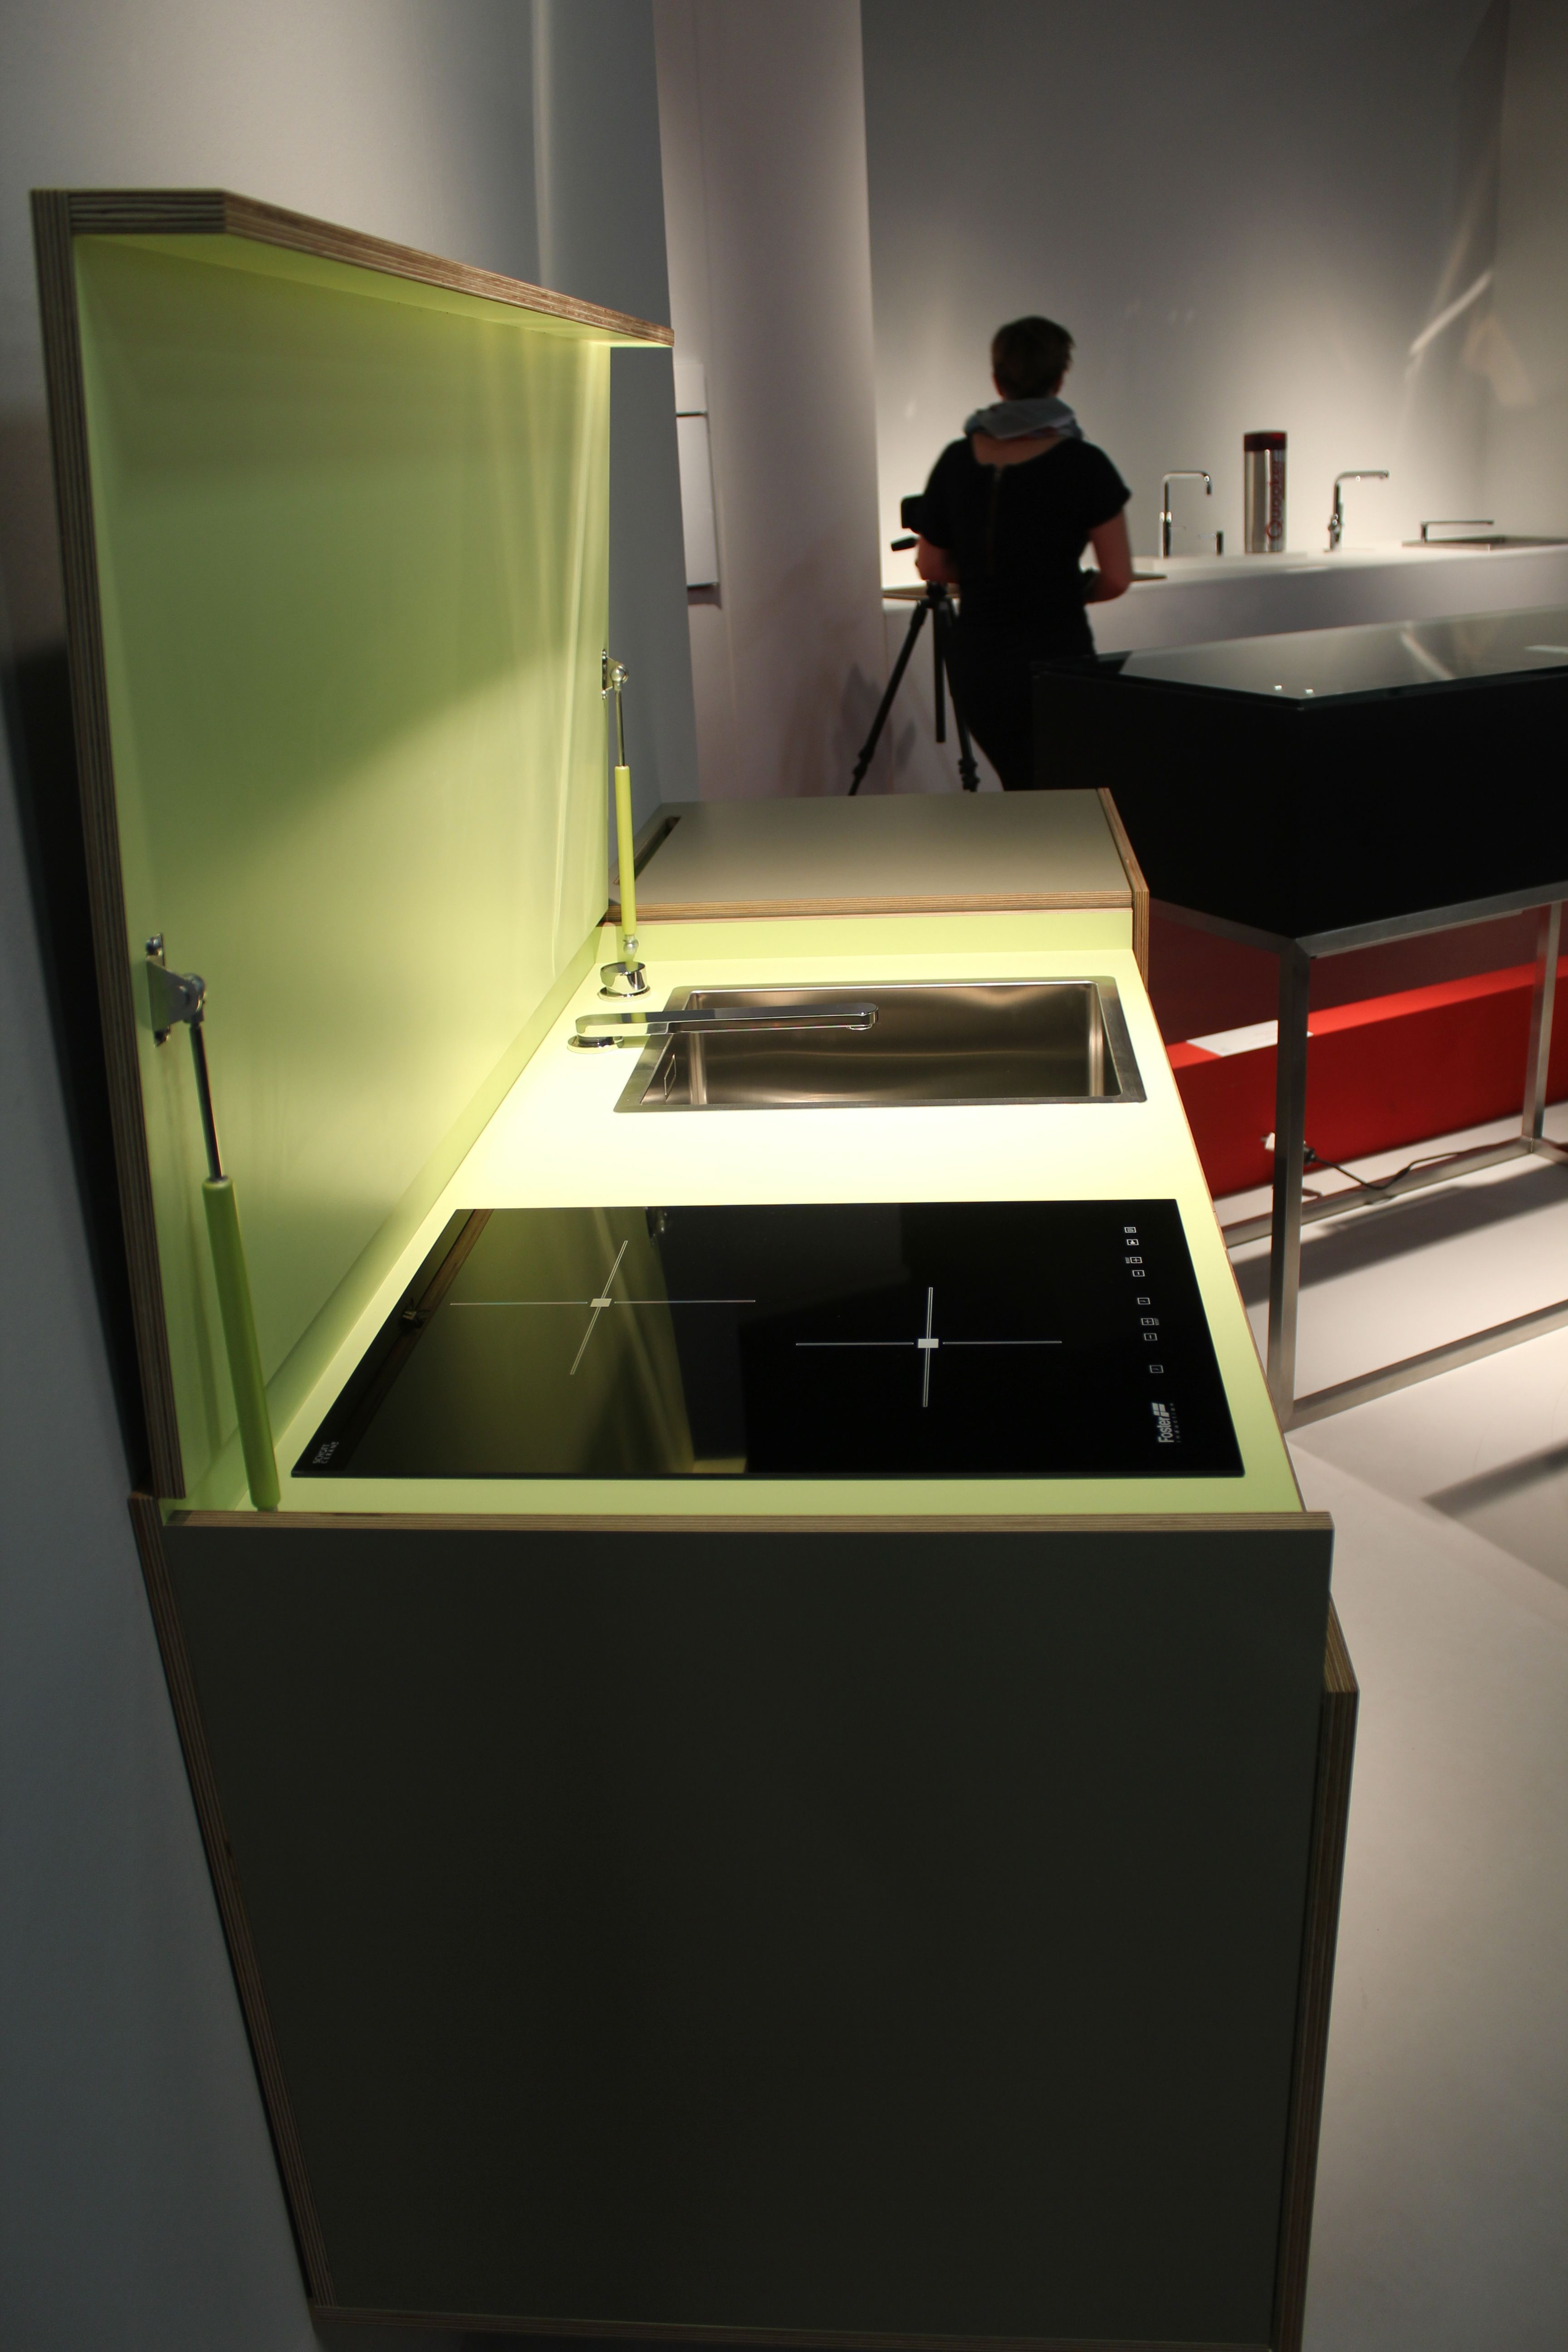 recessed kitchen cabinets small kitchen space no problem imm show blogtourcgn 25120